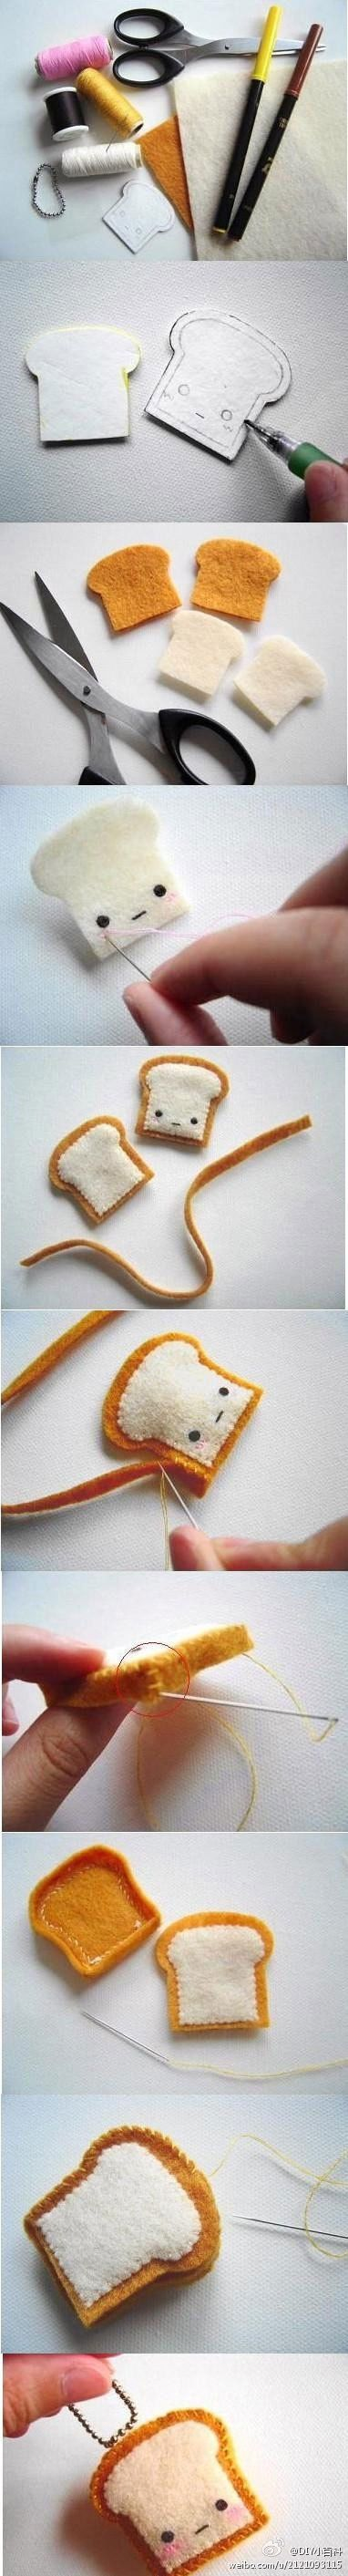 Felt toast tutorial